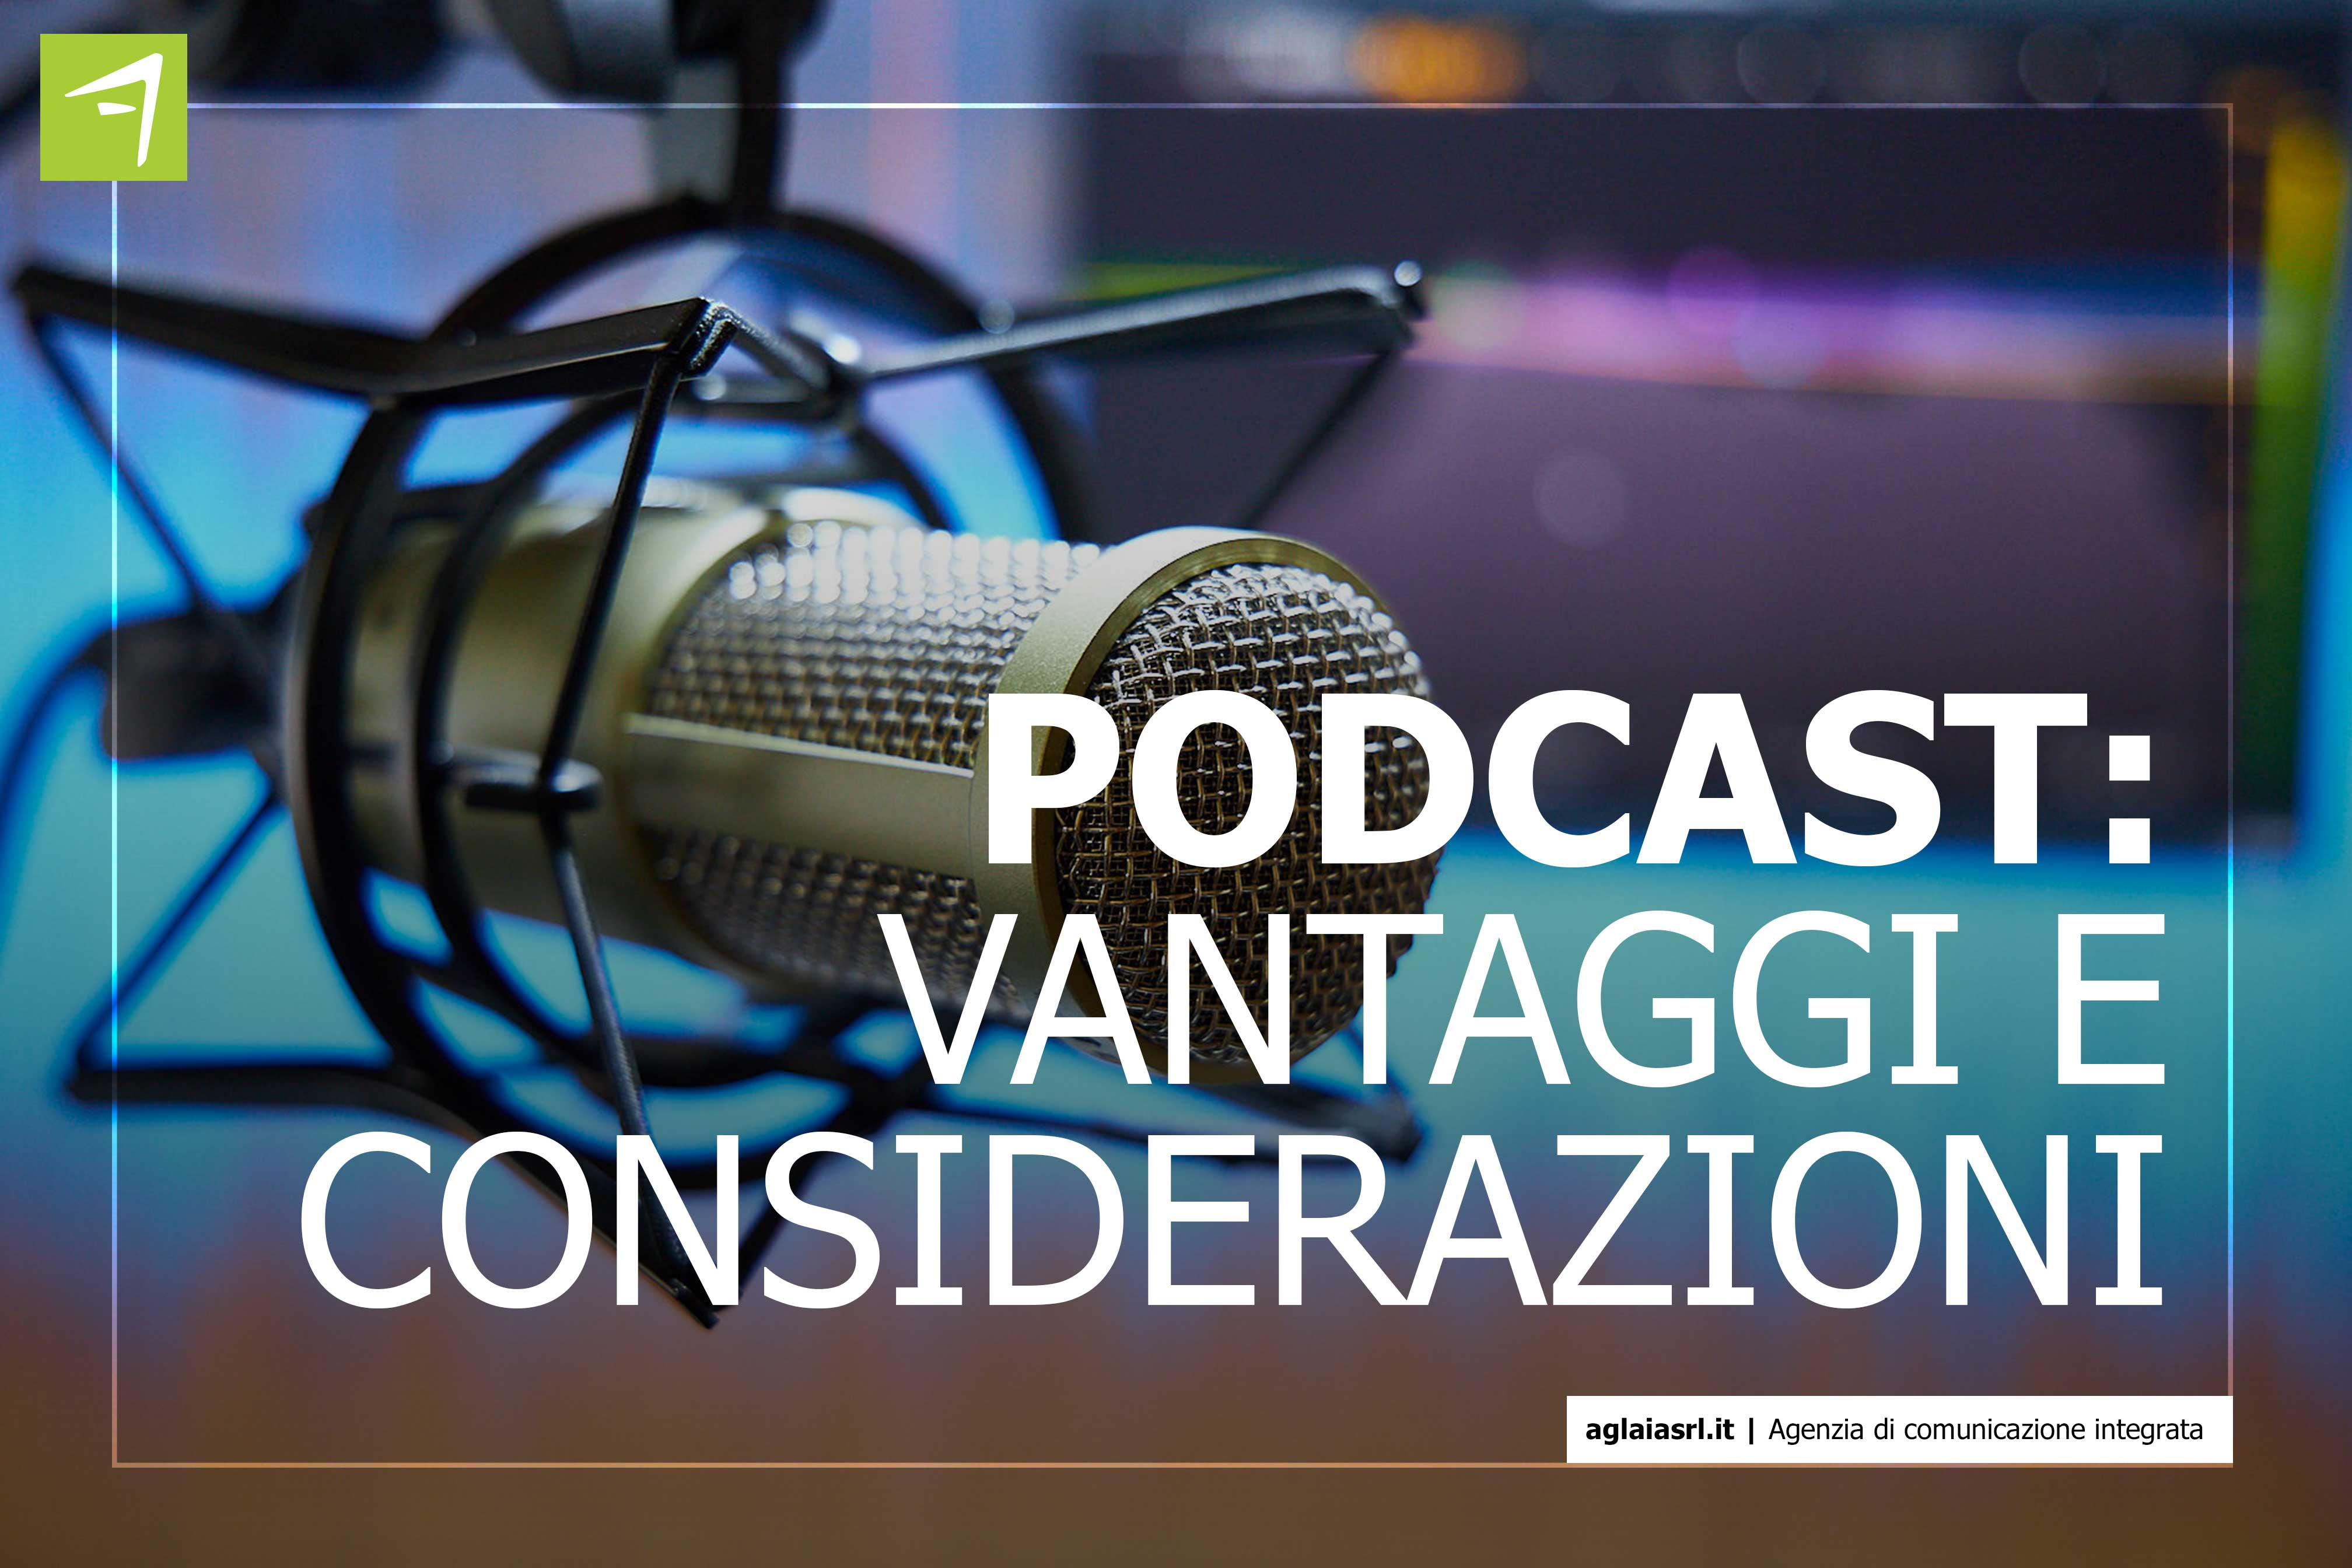 vantaggi podcast